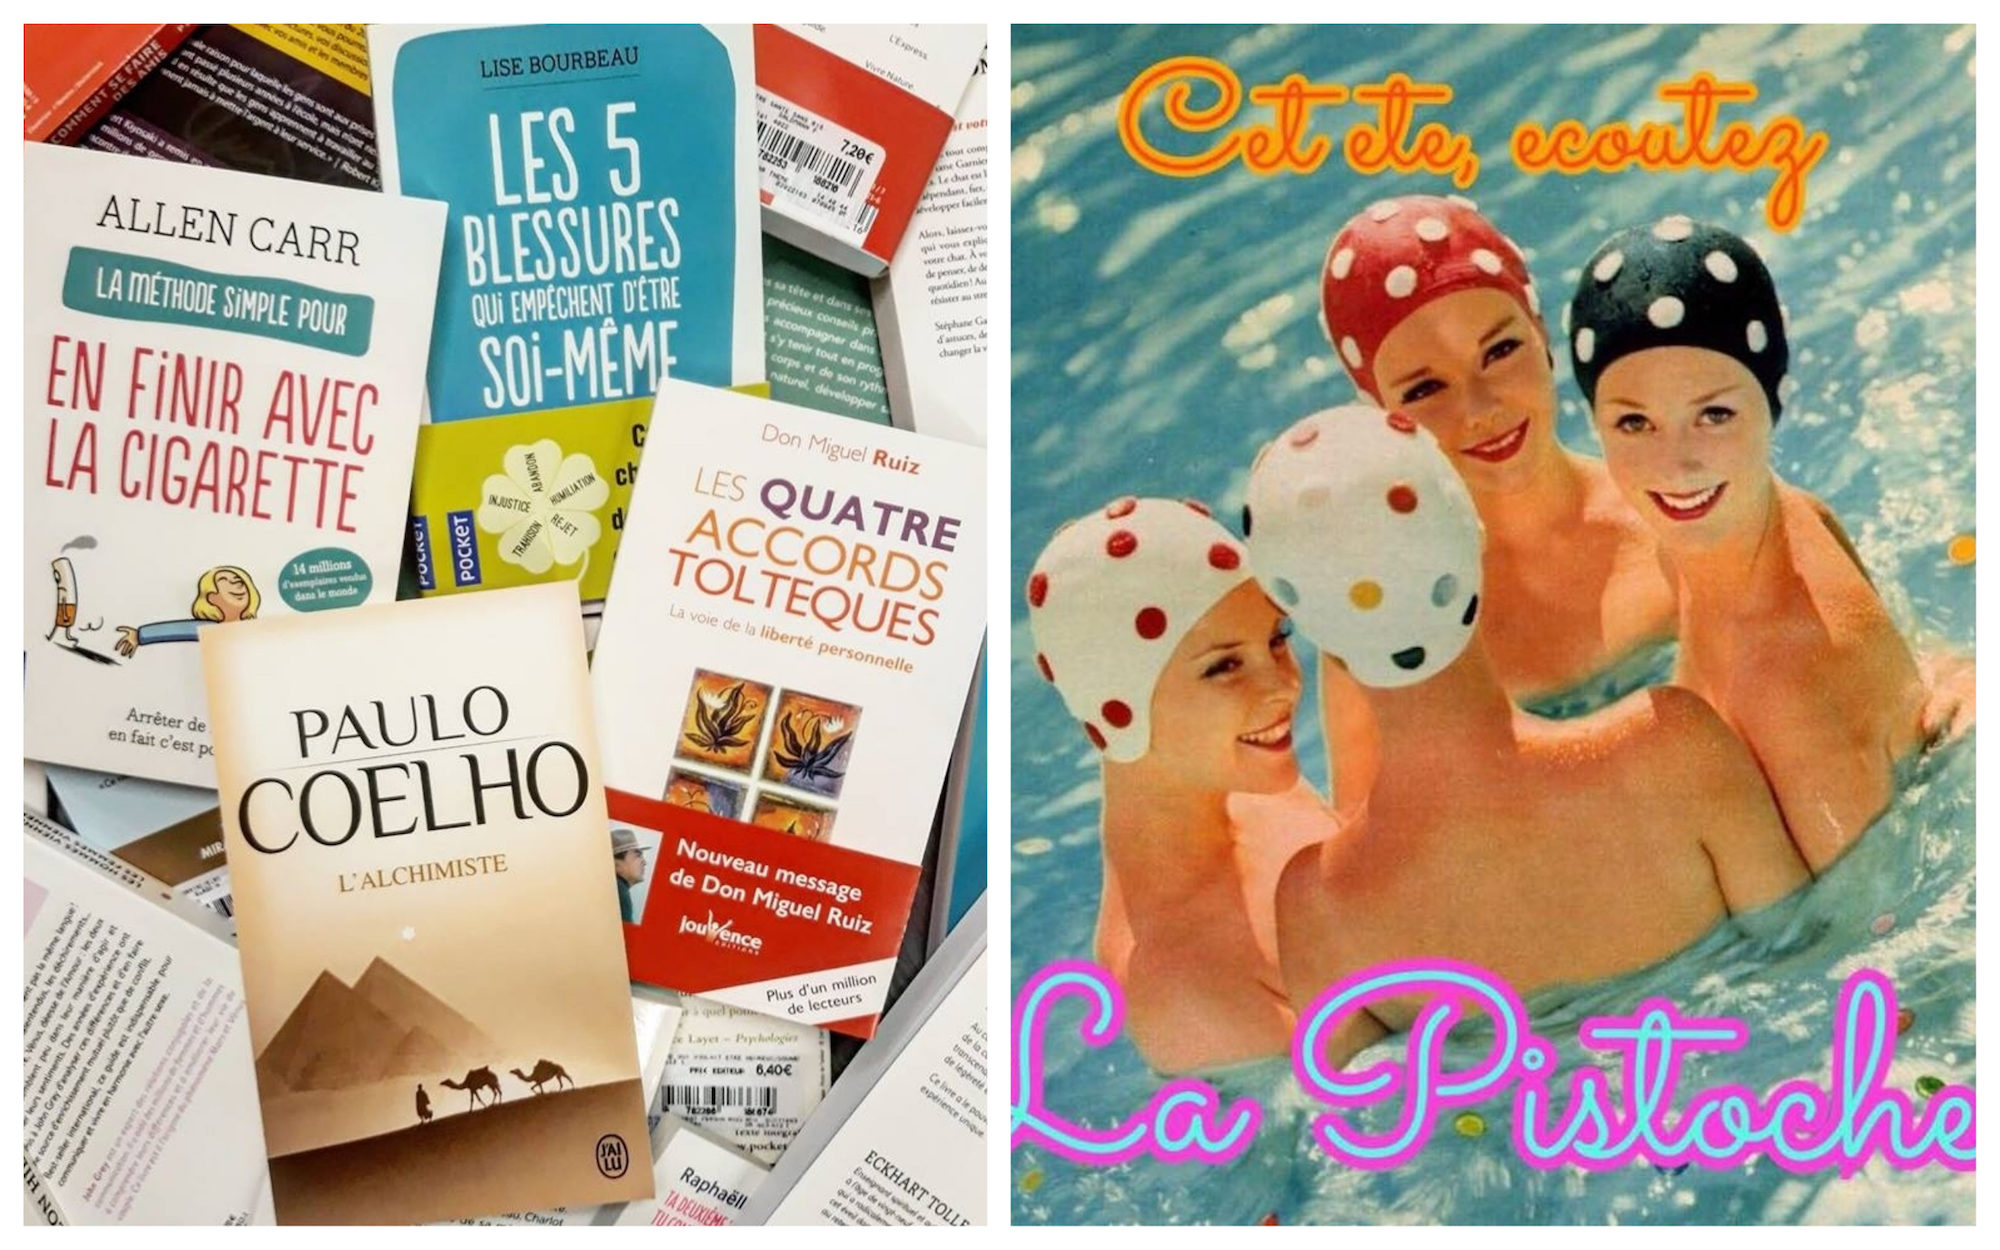 Books to take with you to the beach this summer (left). A retro poster for La Pistoche podcast with four women in a pool wearing spotted bathing caps (right).